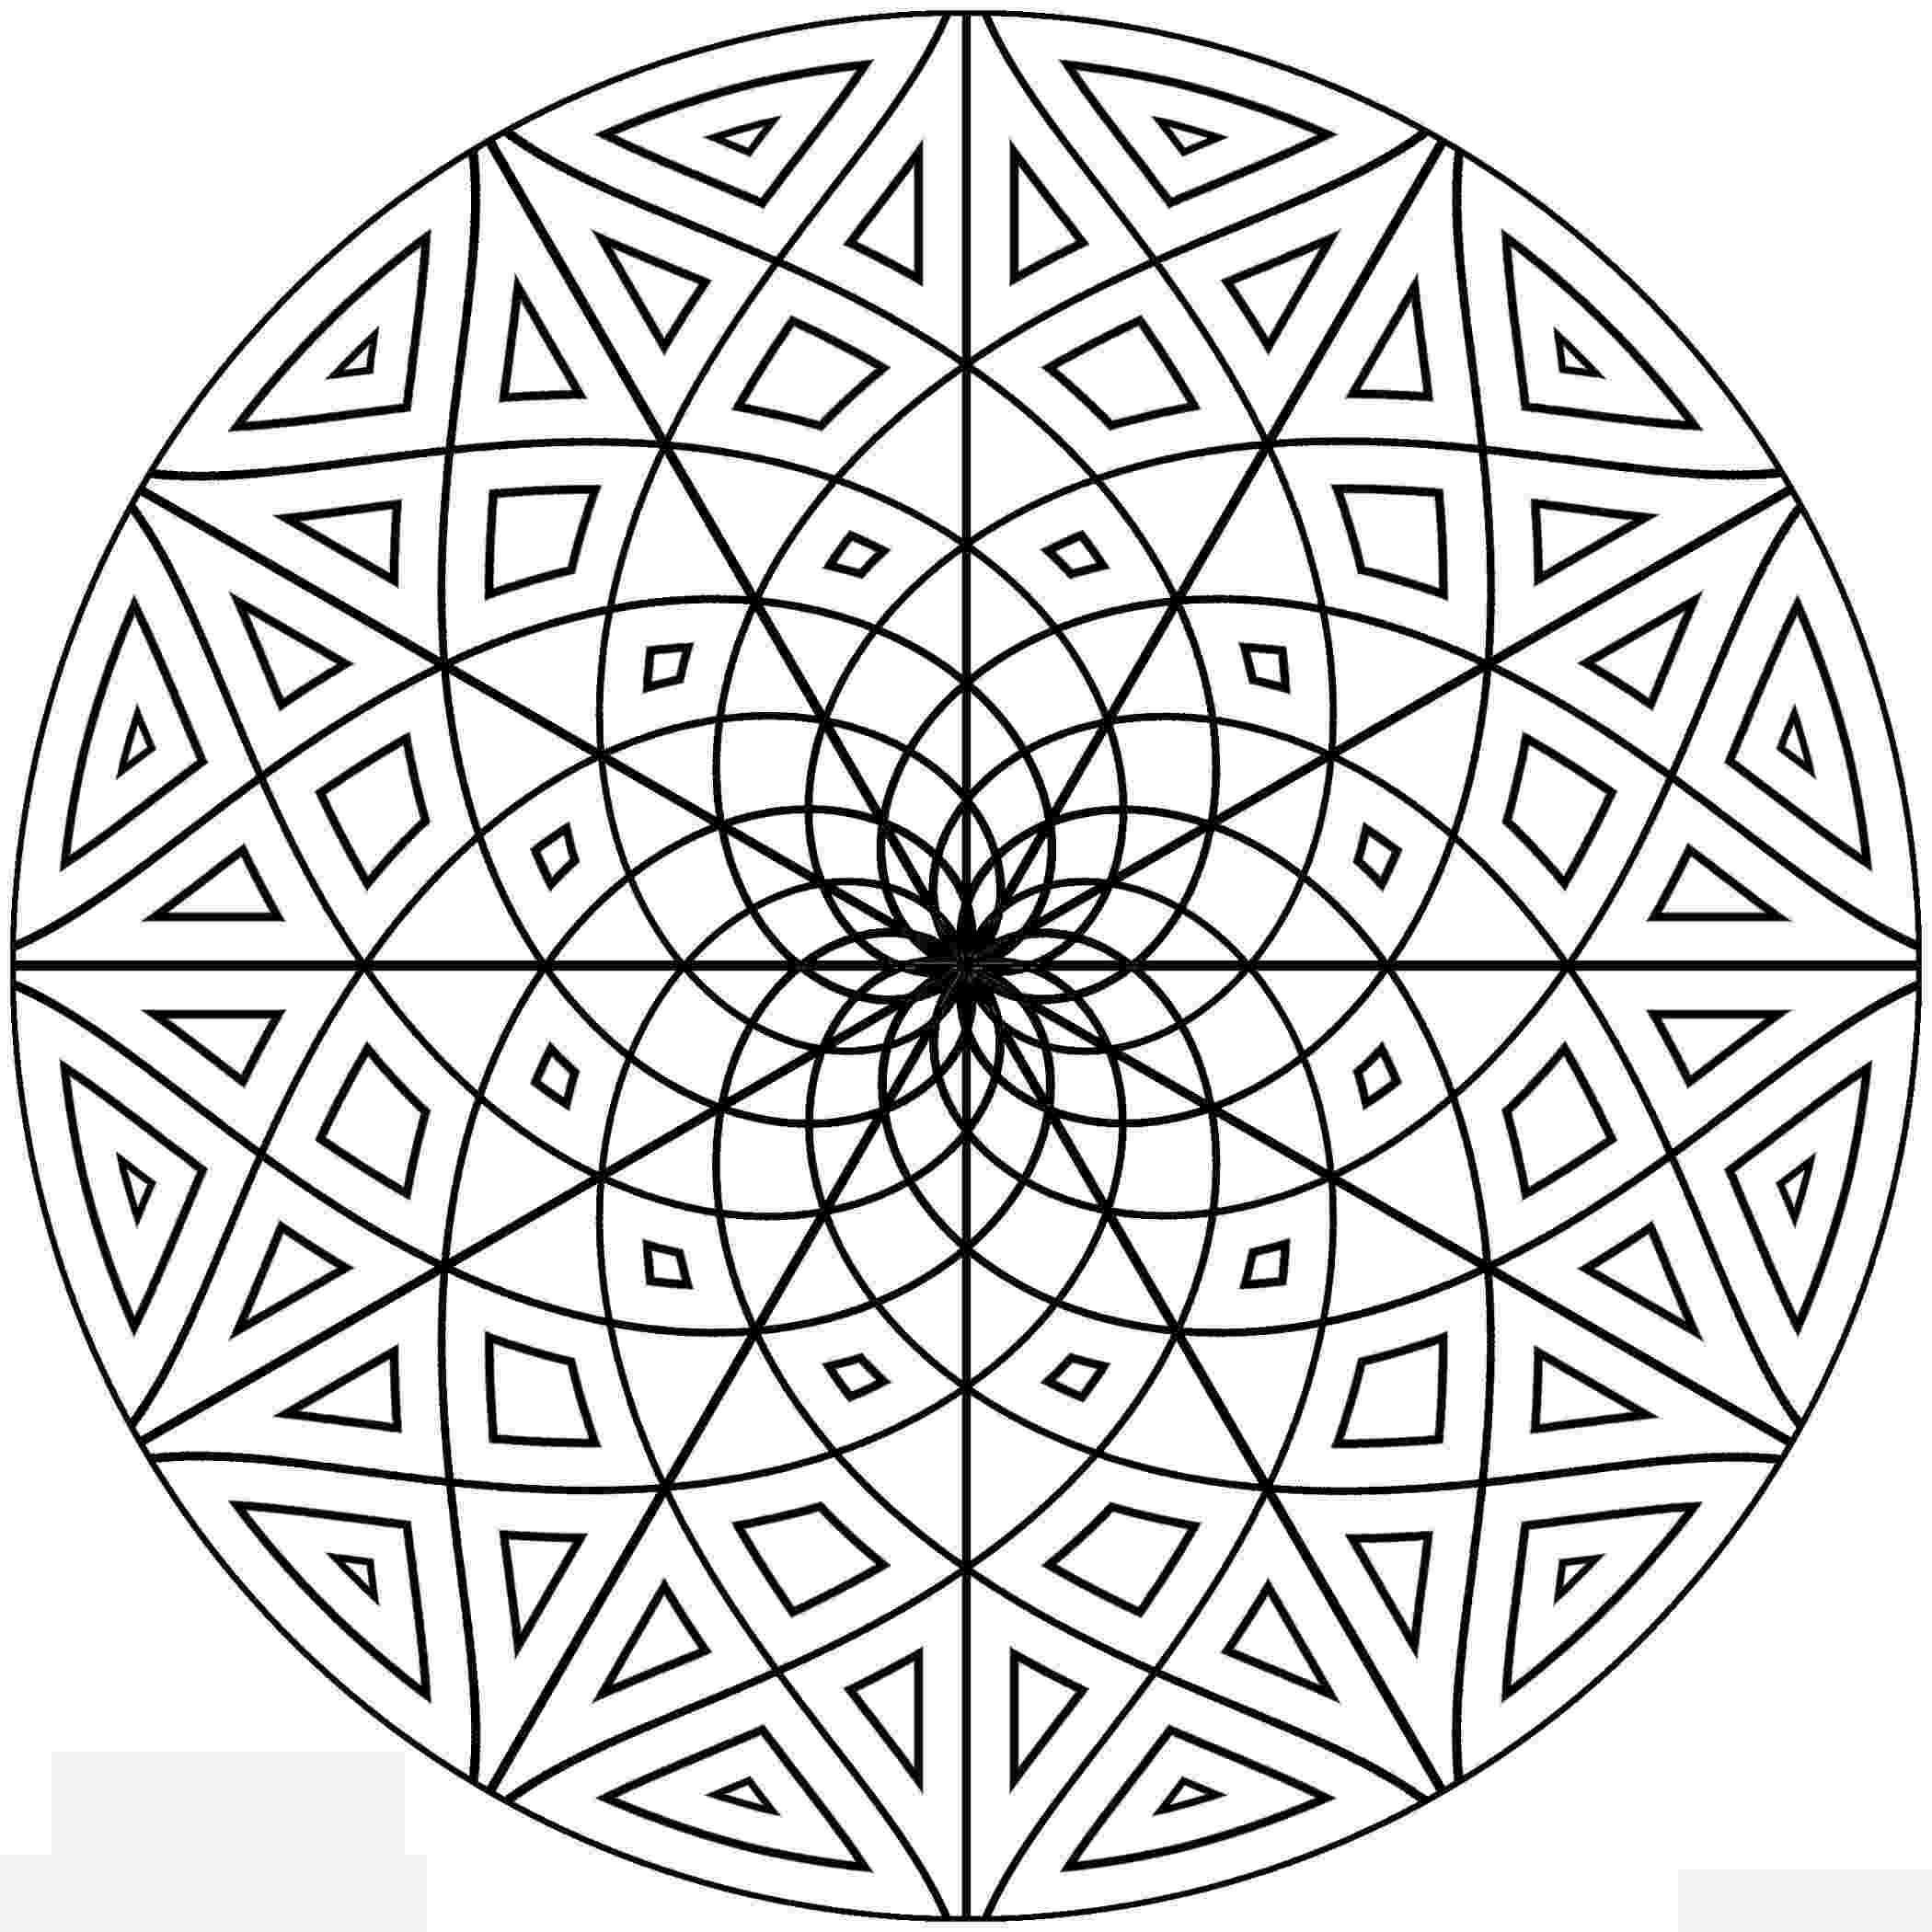 pattern colouring pages colouring designs thelinoprinter pages colouring pattern